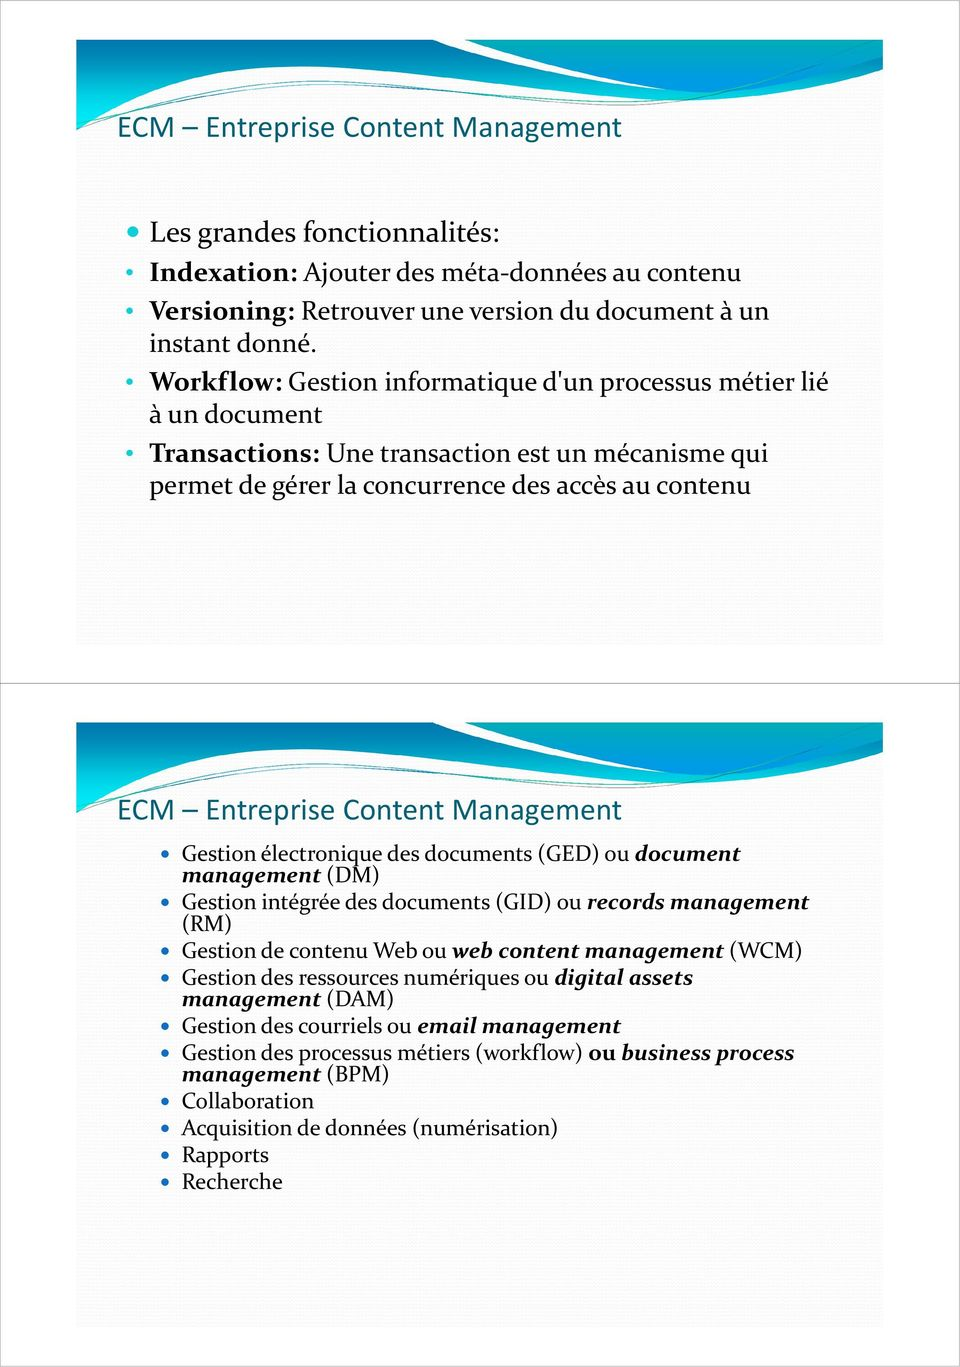 Management Gestion électronique des documents (GED) ou document management(dm) Gestion intégrée des documents (GID) ou records management (RM) Gestion de contenu Web ou web content management(wcm)